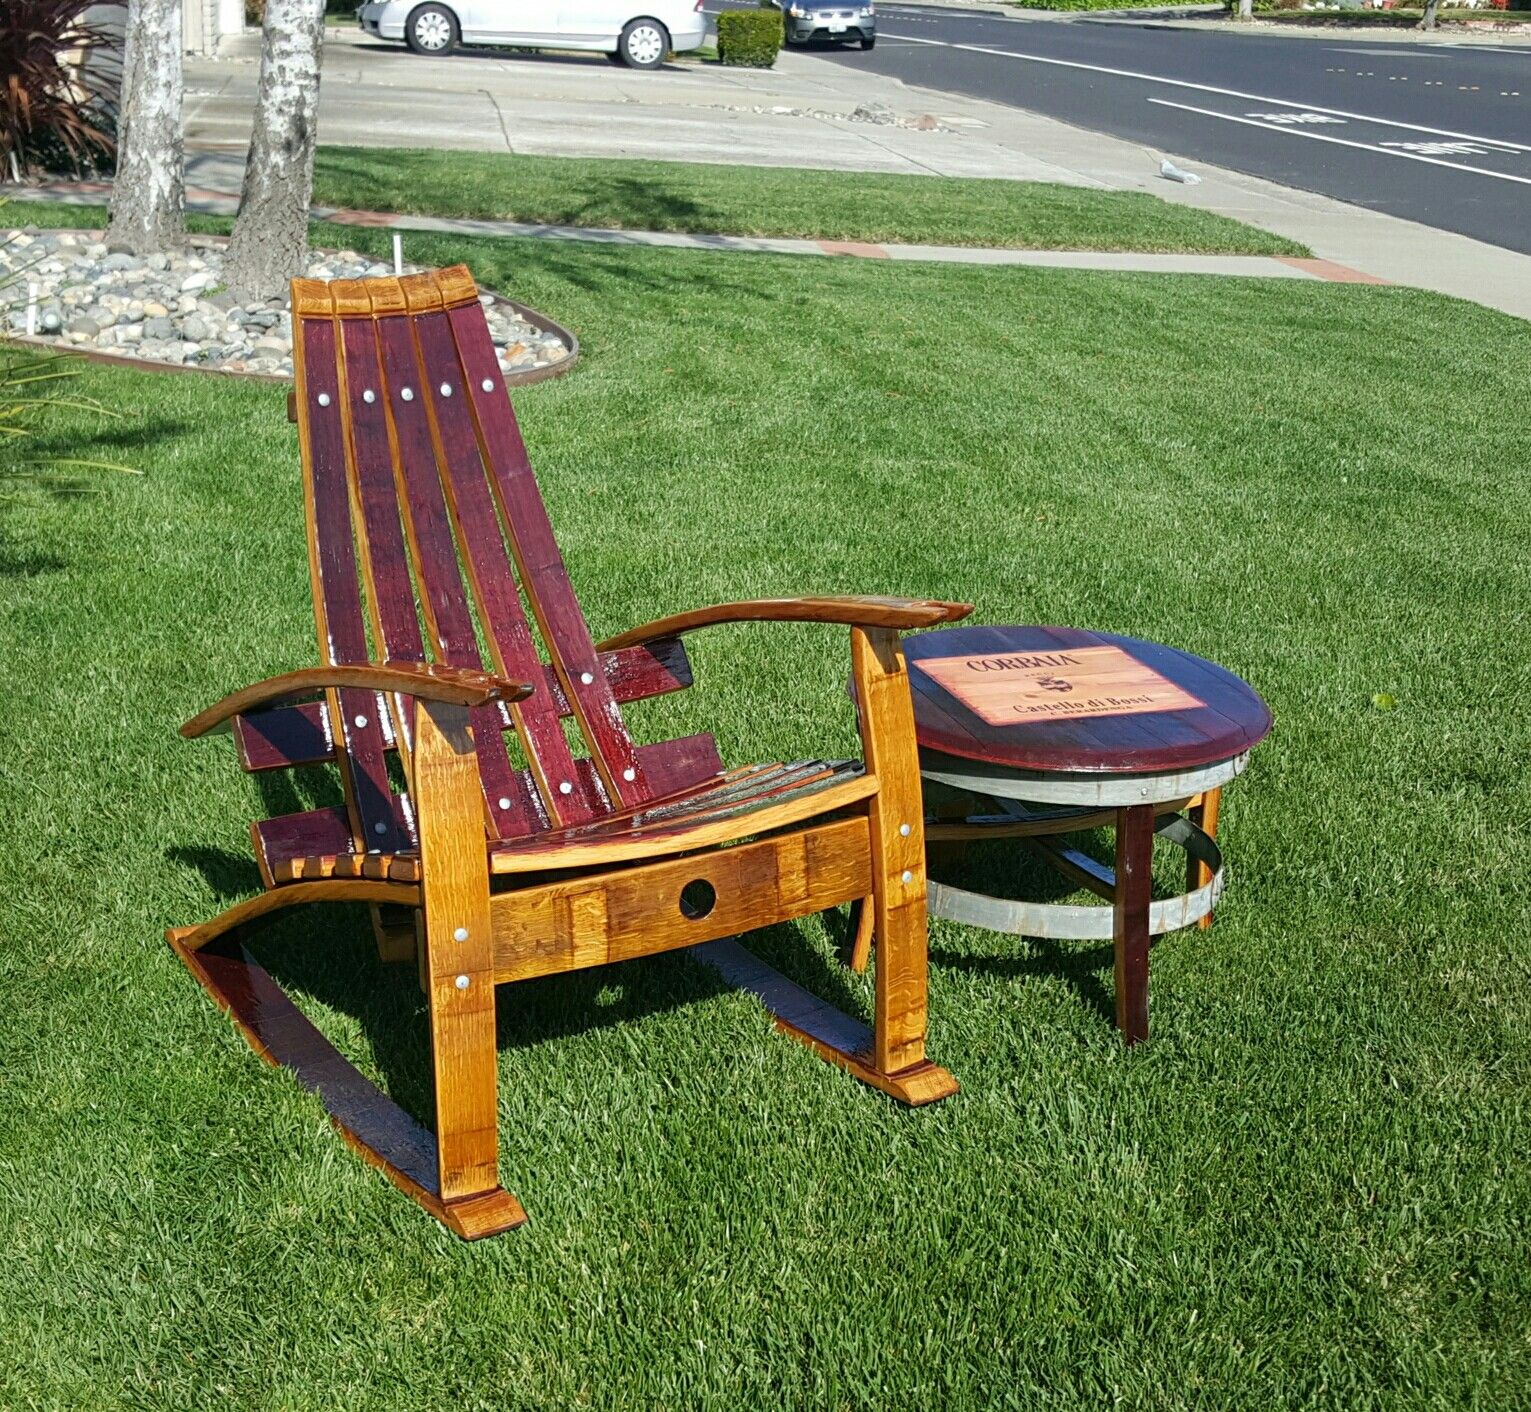 Patio Furniture Livermore Ca: Pin By Nate On Livermore Customs